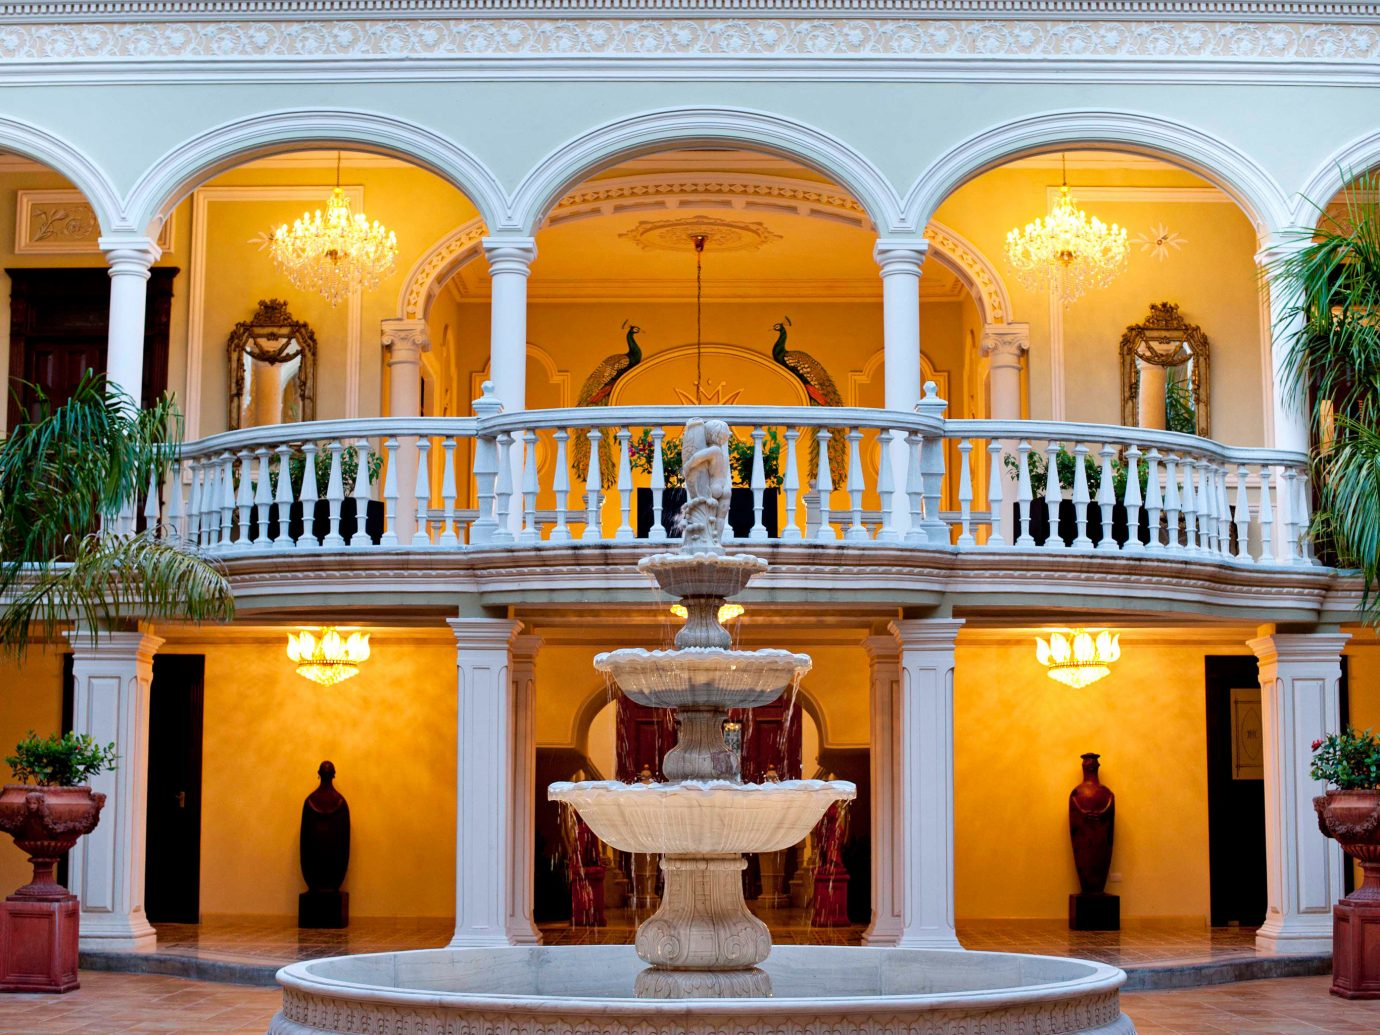 Elegant Exterior Grounds Mexico Trip Ideas Weekend Getaways building palace yellow estate Lobby mansion hacienda tourist attraction colonnade